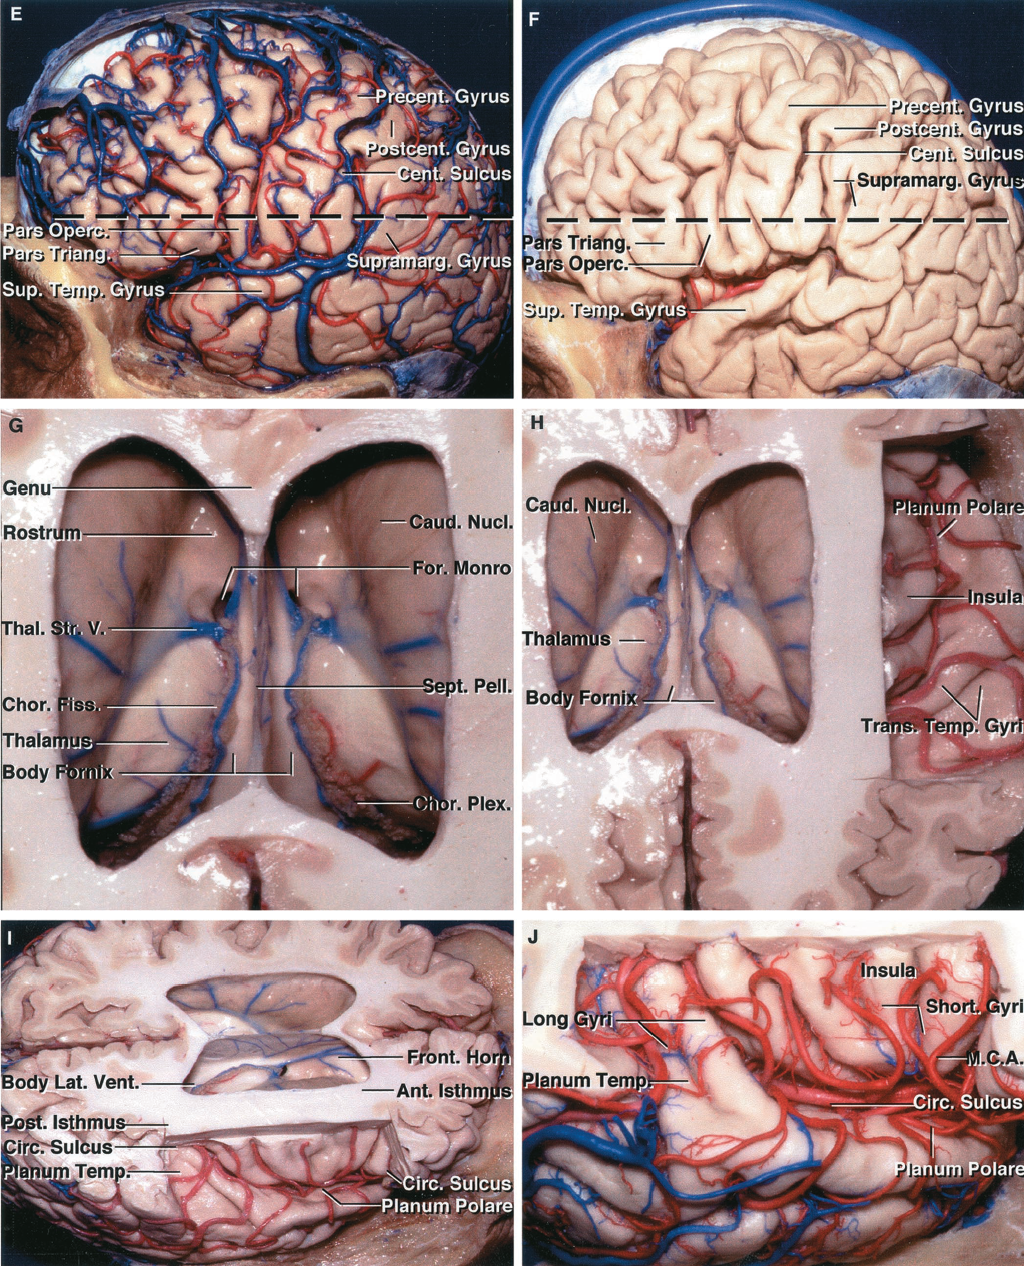 FIGURE 5.3 E-J. E, lateral view of the hemisphere. In the next step, the sulci and gyri on the lateral surface are examined (Fig. 1.1). The central sulcus ascends between the pre- and postcentral gyri. The precentral gyrus is located behind the pars opercularis. The postcentral gyrus is located in front of the anterior part of the supramarginal gyrus. To expose the ventricles for the dissection in the laboratory, an axial cut through the hemisphere is completed 1 cm above the posterior end of the long axis of the sylvian fissure (broken line). F, the same hemisphere after removal of the arteries and veins. The site of the cut (broken line) to expose the ventricles crosses the inferior frontal gyrus, the lower part of the central sulcus, and the supramarginal gyrus. G, superior view into the lateral ventricles. The caudate nucleus forms the lateral wall and the septum pellucidum forms the medial wall of the frontal horn and body of the lateral ventricle. The rostrum of the corpus callosum forms the floor of the frontal horn. The thalamus is in the floor of the body of the lateral ventricle. The third ventricle is located below the body of the fornix. The choroid plexus is attached along the choroidal fissure located between the fornix and thalamus. H, the frontoparietal operculum has been removed to expose the insula lateral to the frontal horn and body of the lateral ventricle. Branches of the middle cerebral artery cross the insula and the plana temporale and polare. I, superolateral view. The middle cerebral artery enters the operculoinsular compartment of the sylvian fissure by crossing the limen insula at the anteroinferior margin of the insula. The anterior part of the circular sulcus is separated from the frontal horn by the anterior isthmus of the central core of the hemisphere, and the posterior part of the circular sulcus is separated from the atrium by the posterior isthmus. J, enlarged view of the middle cerebral branches coursing along the insula. The up